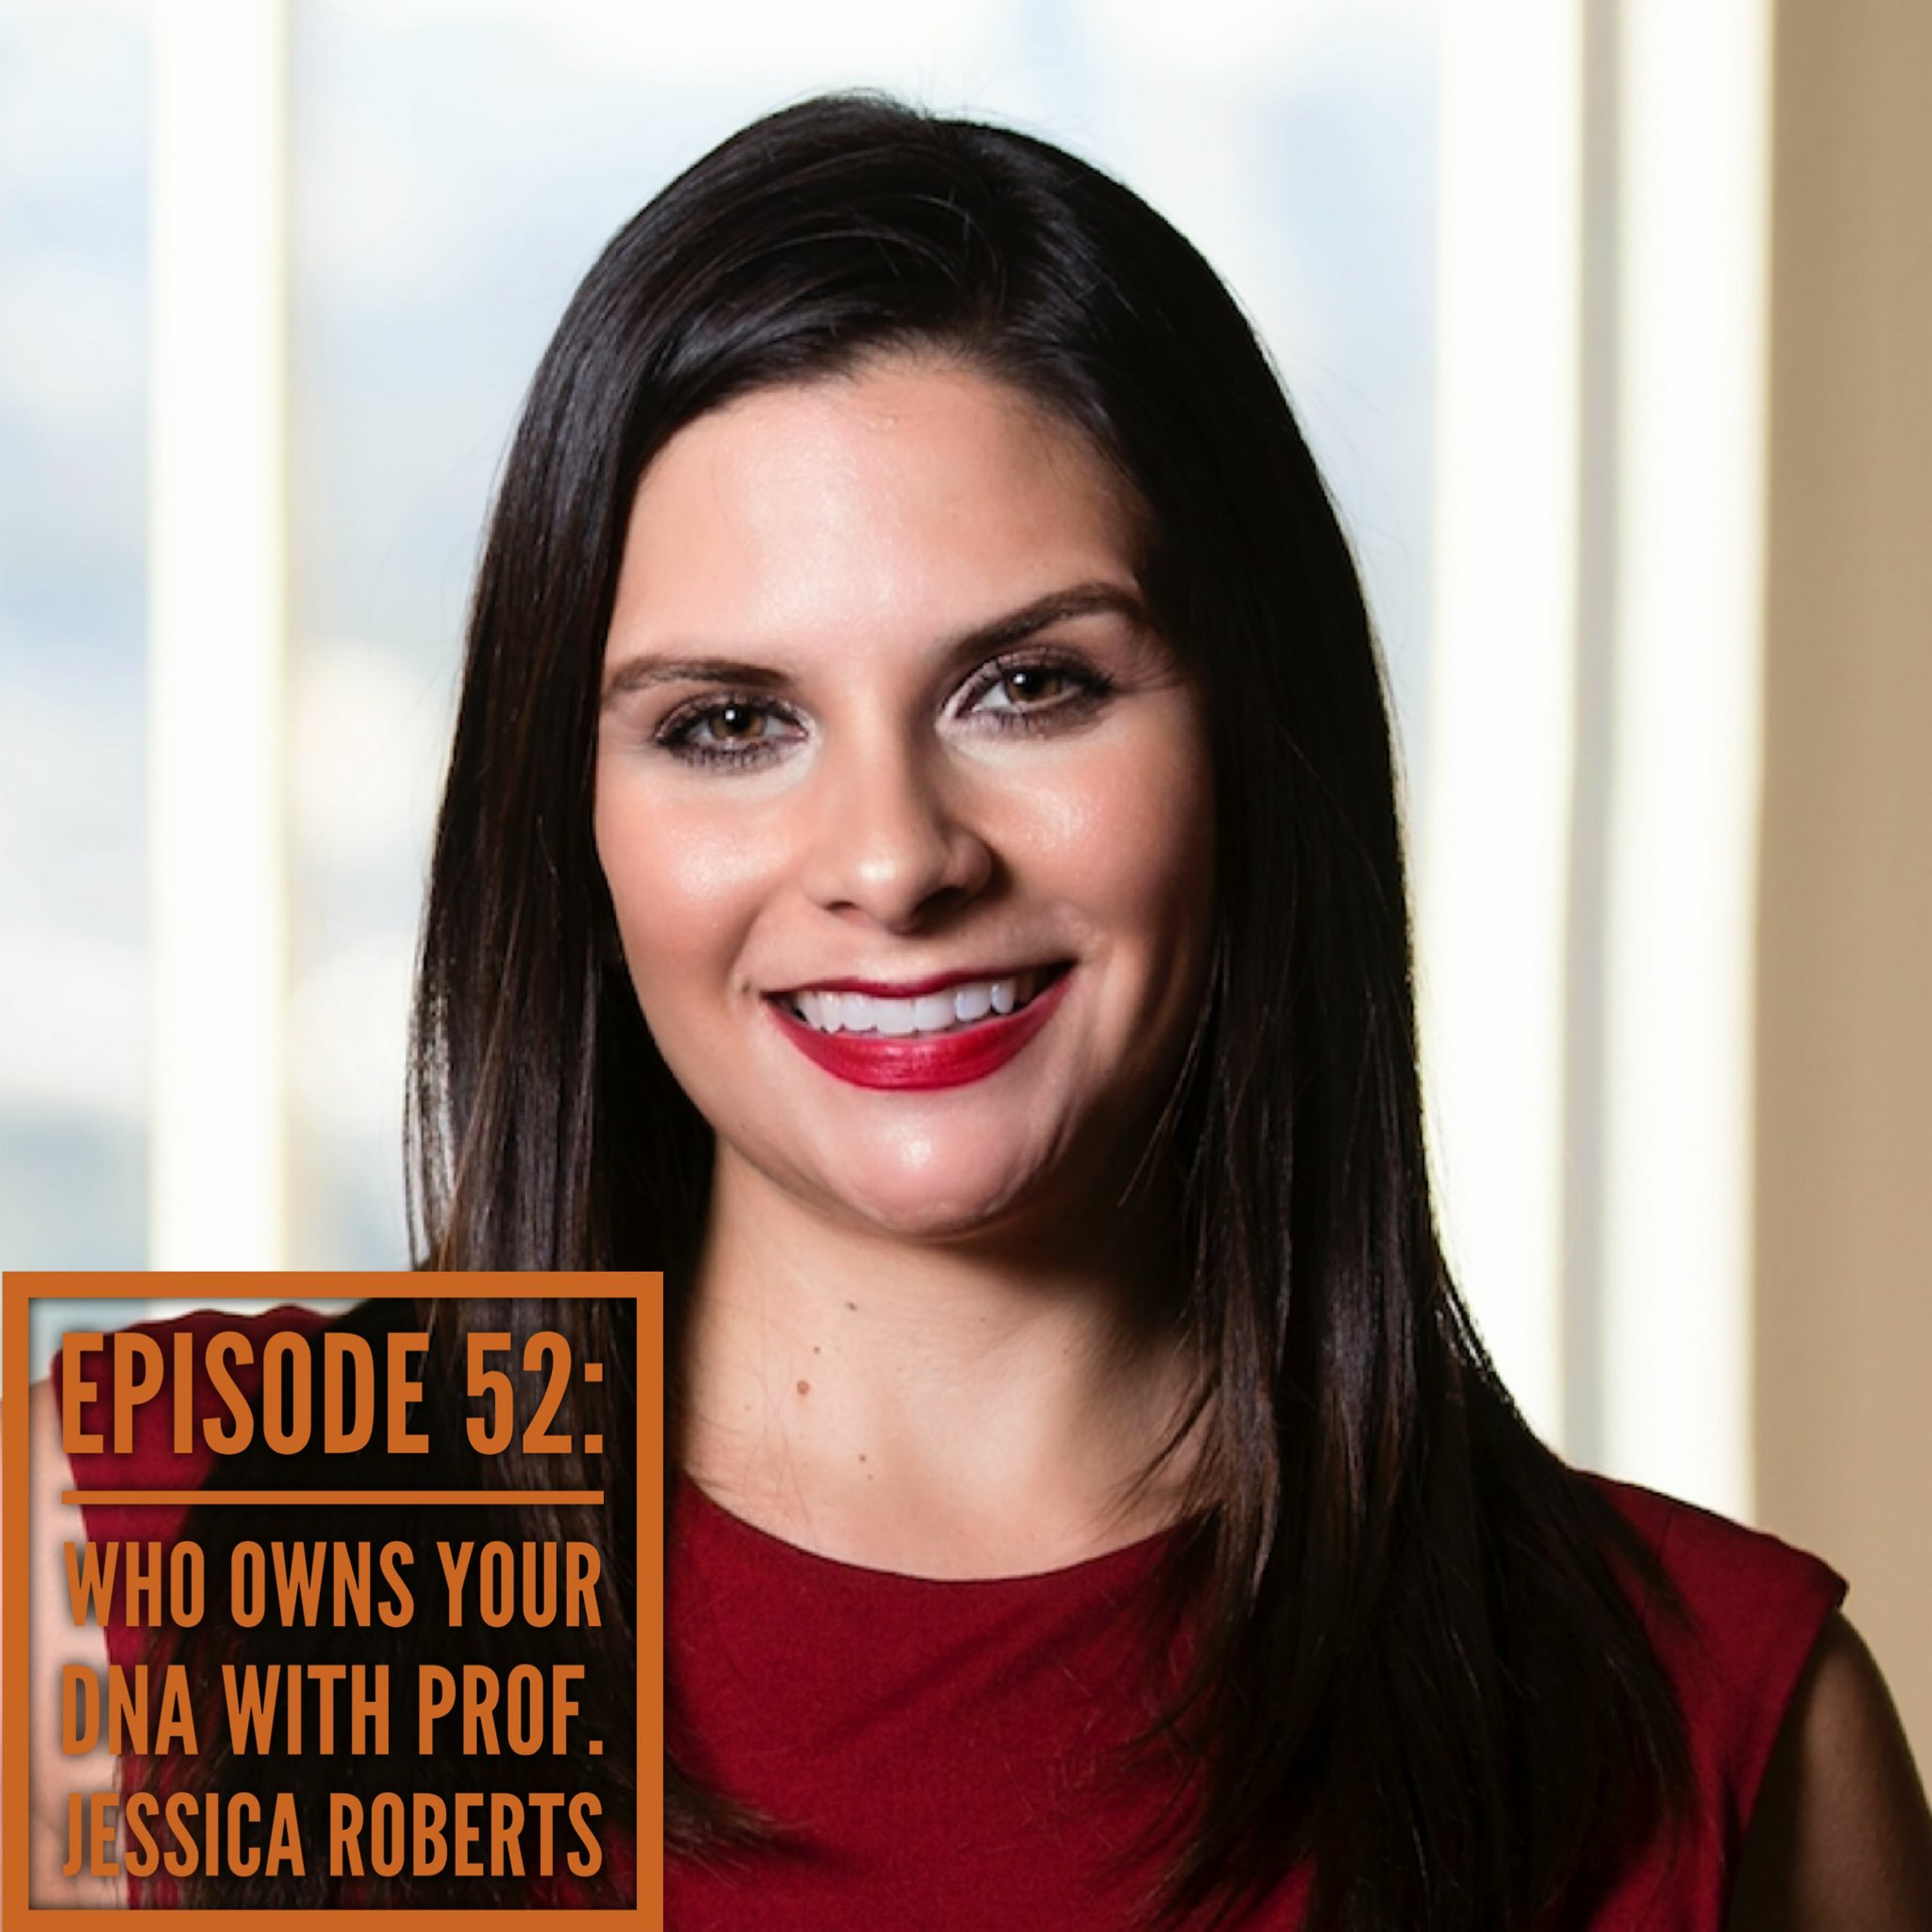 Episode 52: Who Owns Your DNA with Prof. Jessica Roberts